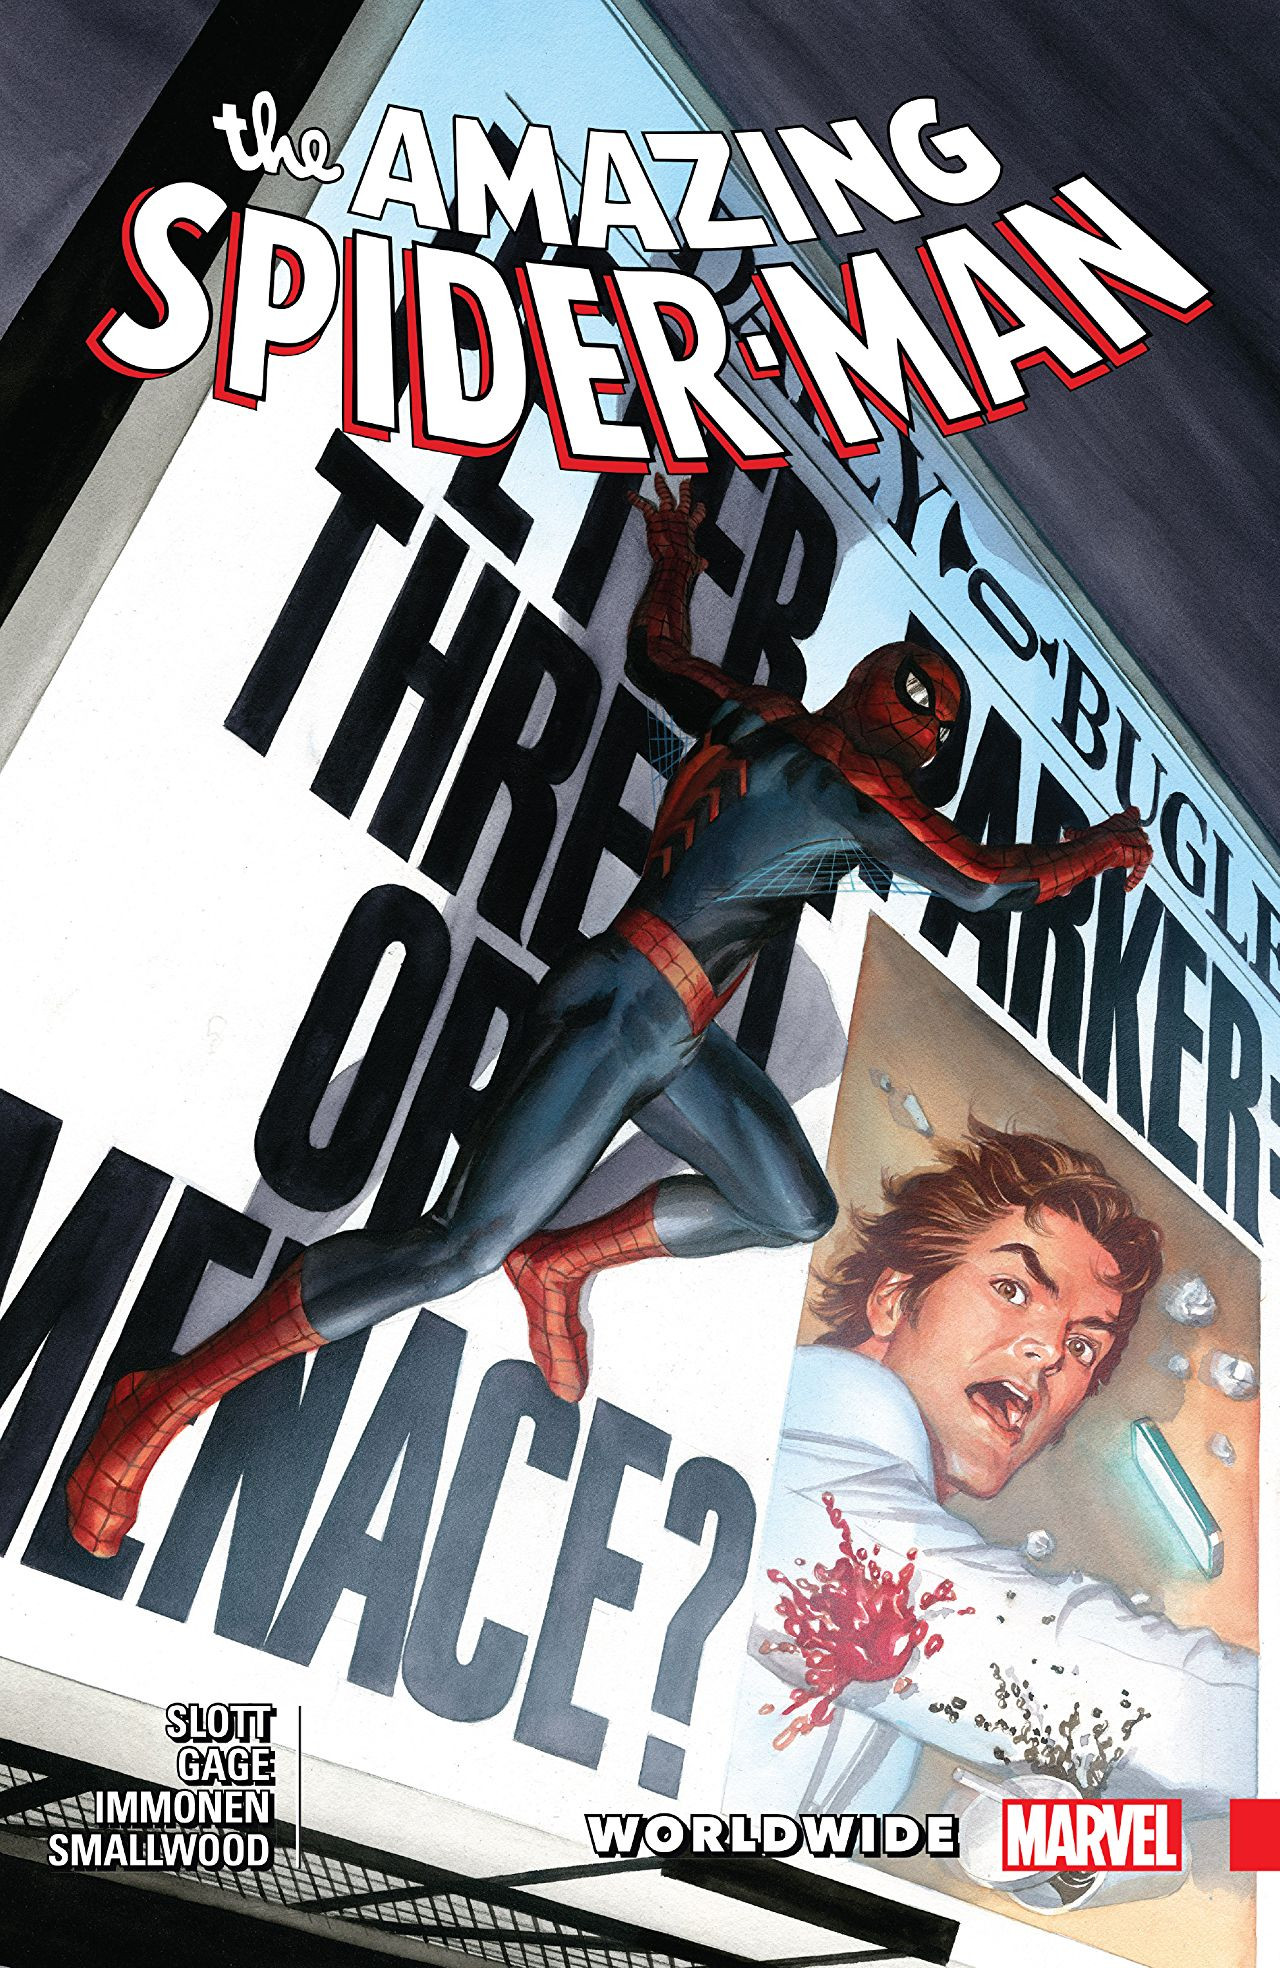 Amazing Spider-Man: Worldwide TPB Vol 1 7